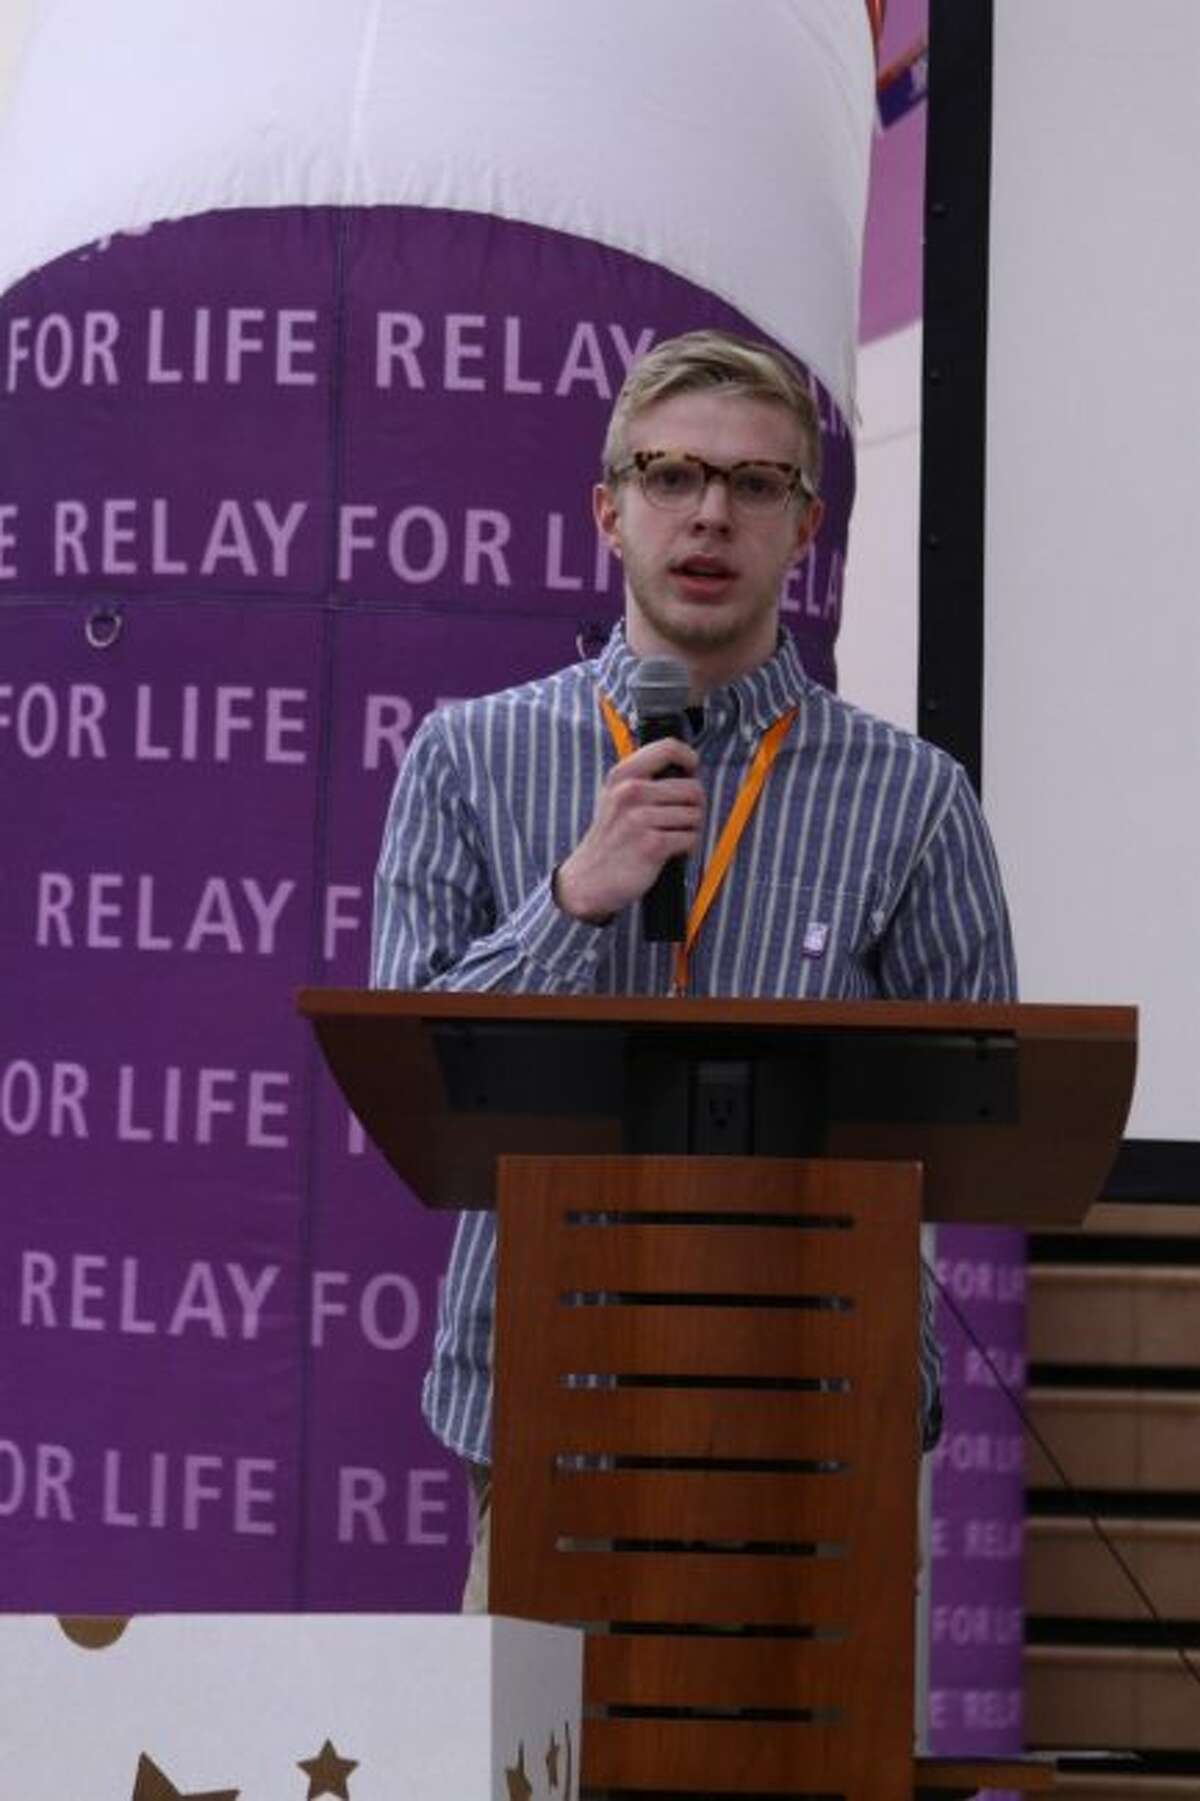 SURVIVOR: Ferris State University Clayton Stakley gives his speech about being diagnosed with leukemia and his battle with the disease during Friday's Relay for Life event at Jim Wink Arena.